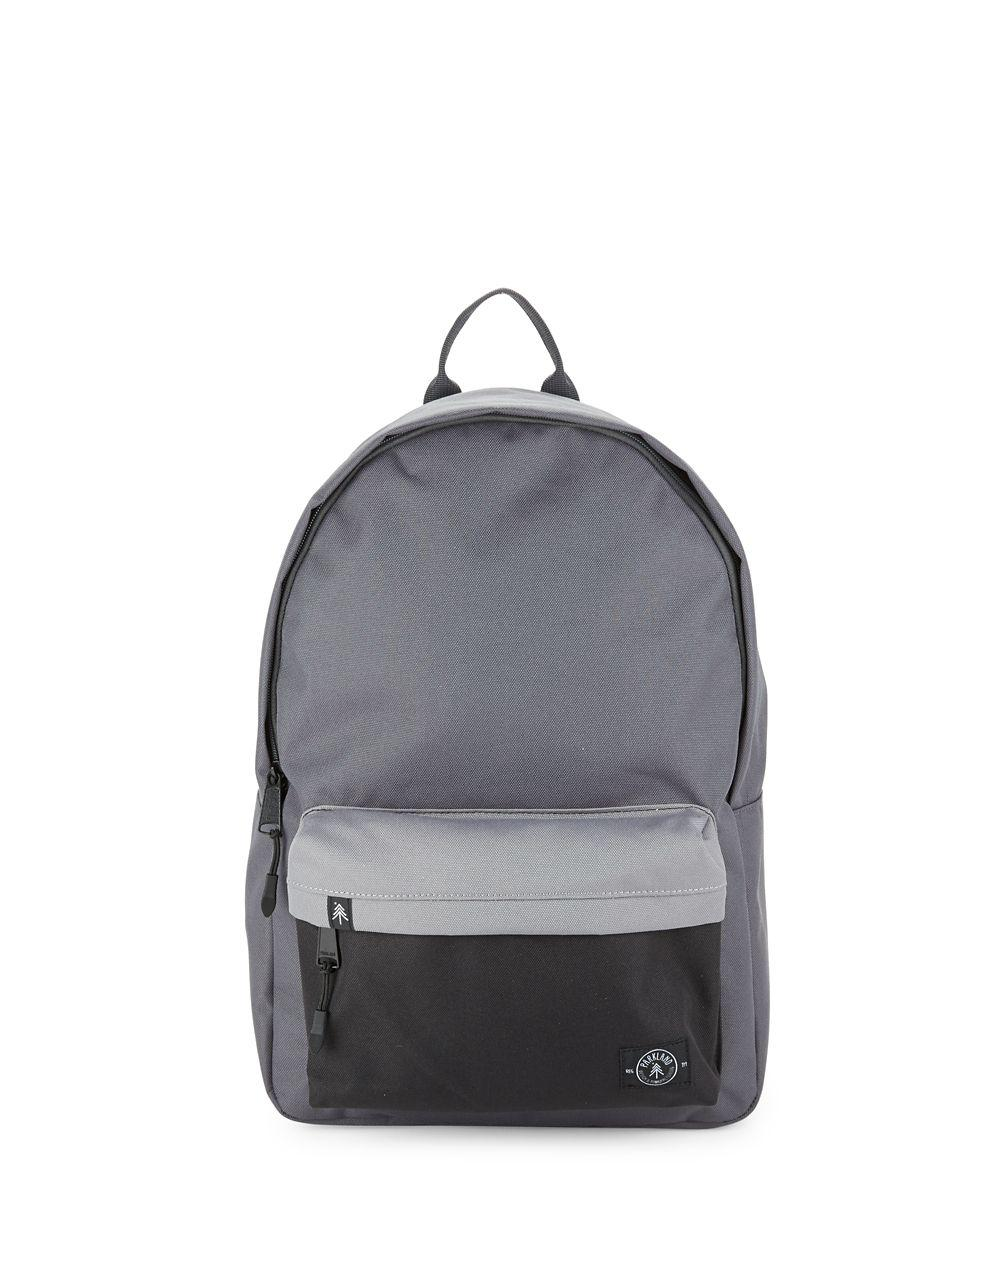 8540c8e388 Parkland Top Zip Backpack in Gray for Men - Lyst